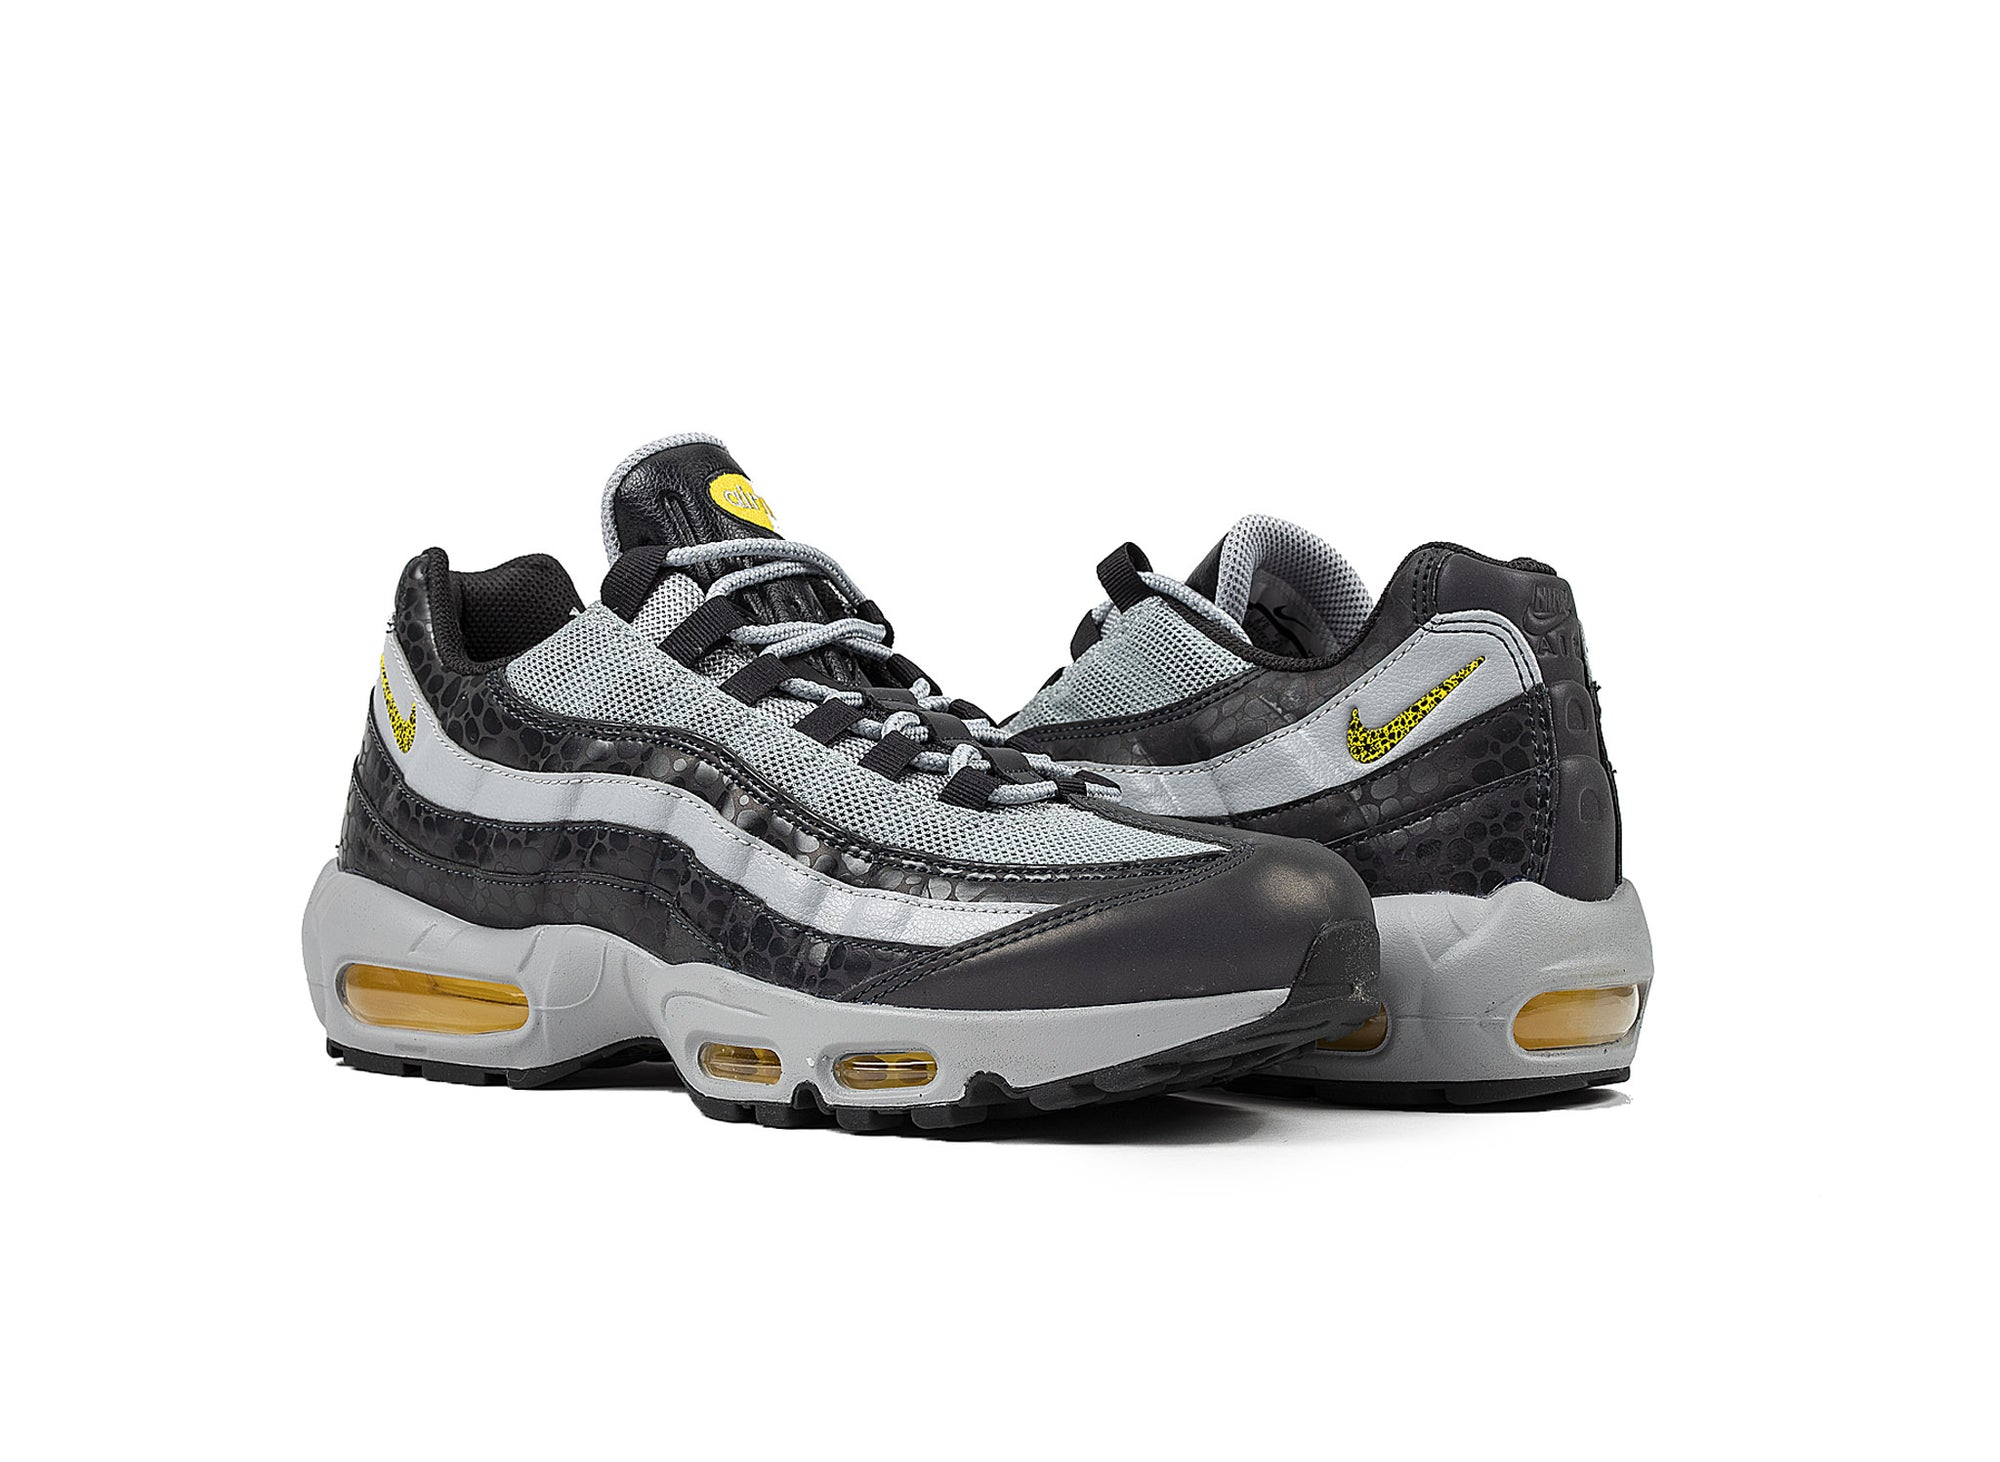 NIKE AIR MAX 95 SE REFLECTIVE - Oneness Boutique 751d1c9436b71